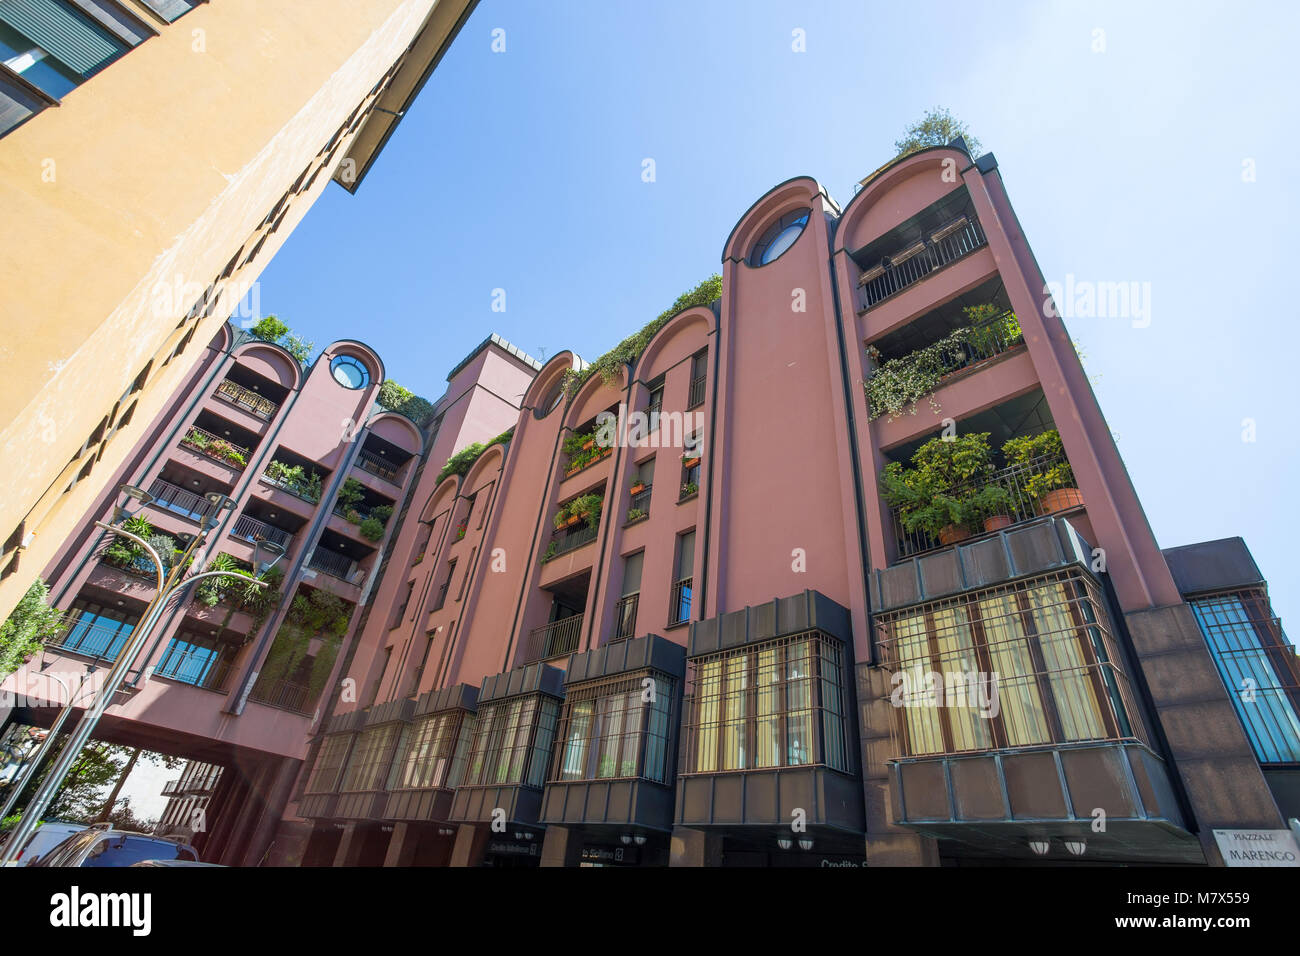 MILAN, ITALY, JUNE 7, 2017 - Modern buildings and offices in Lanza Place, center city of Milan, Italy - Stock Image